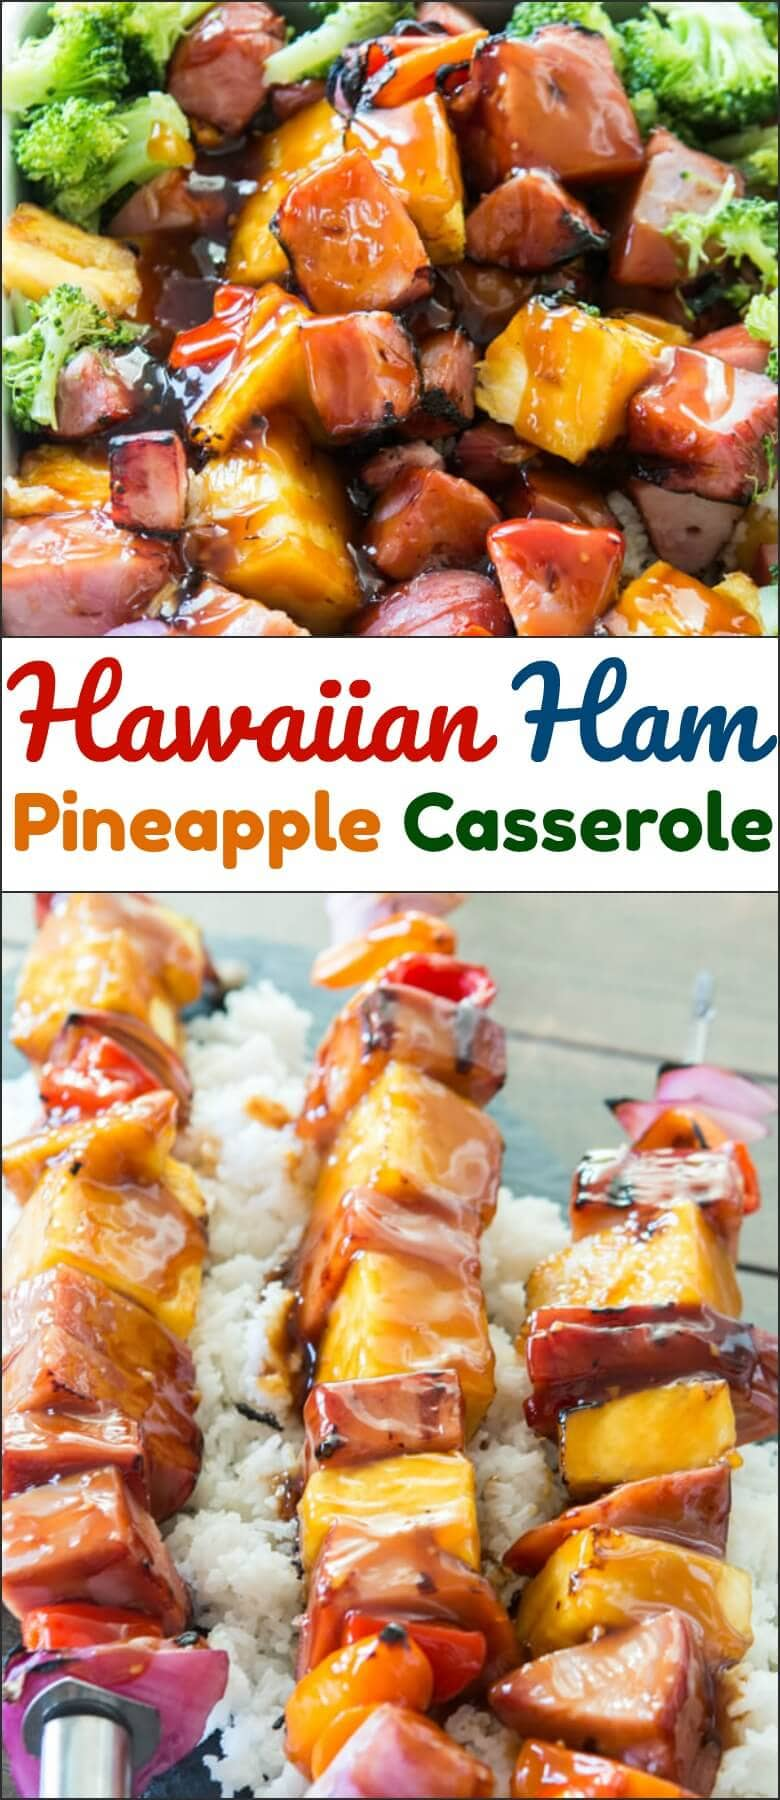 Summer comes and goes faster than any other season and suddenly you're back to school shopping. Not this year with Hawaiian Ham and Pineapple Casserole.